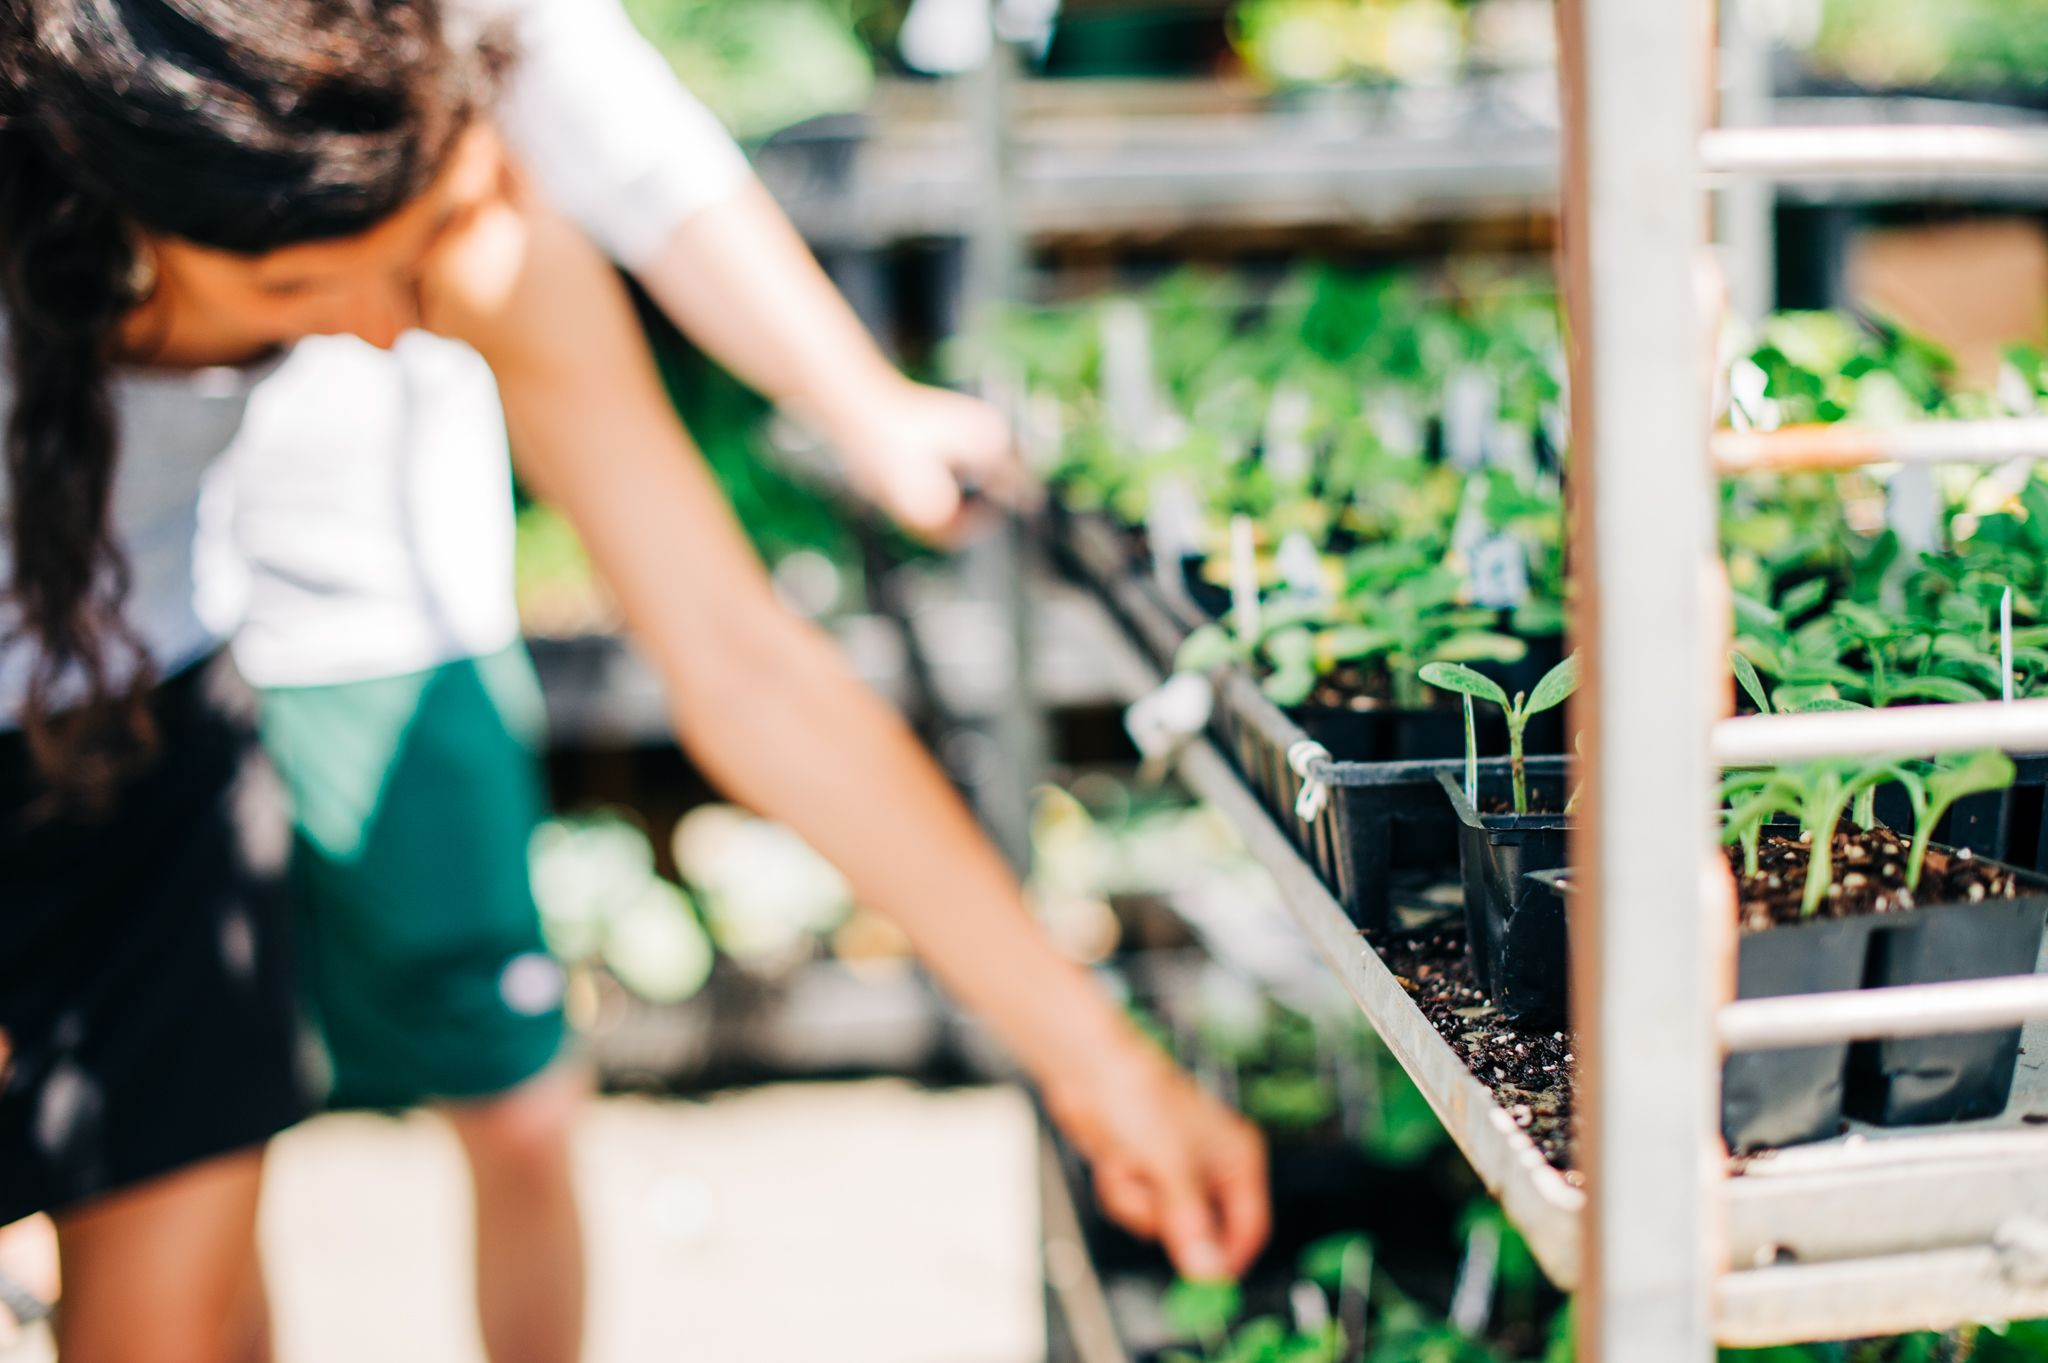 A woman reaches for a plant at Soviero's Garden Center in High Point, NC.